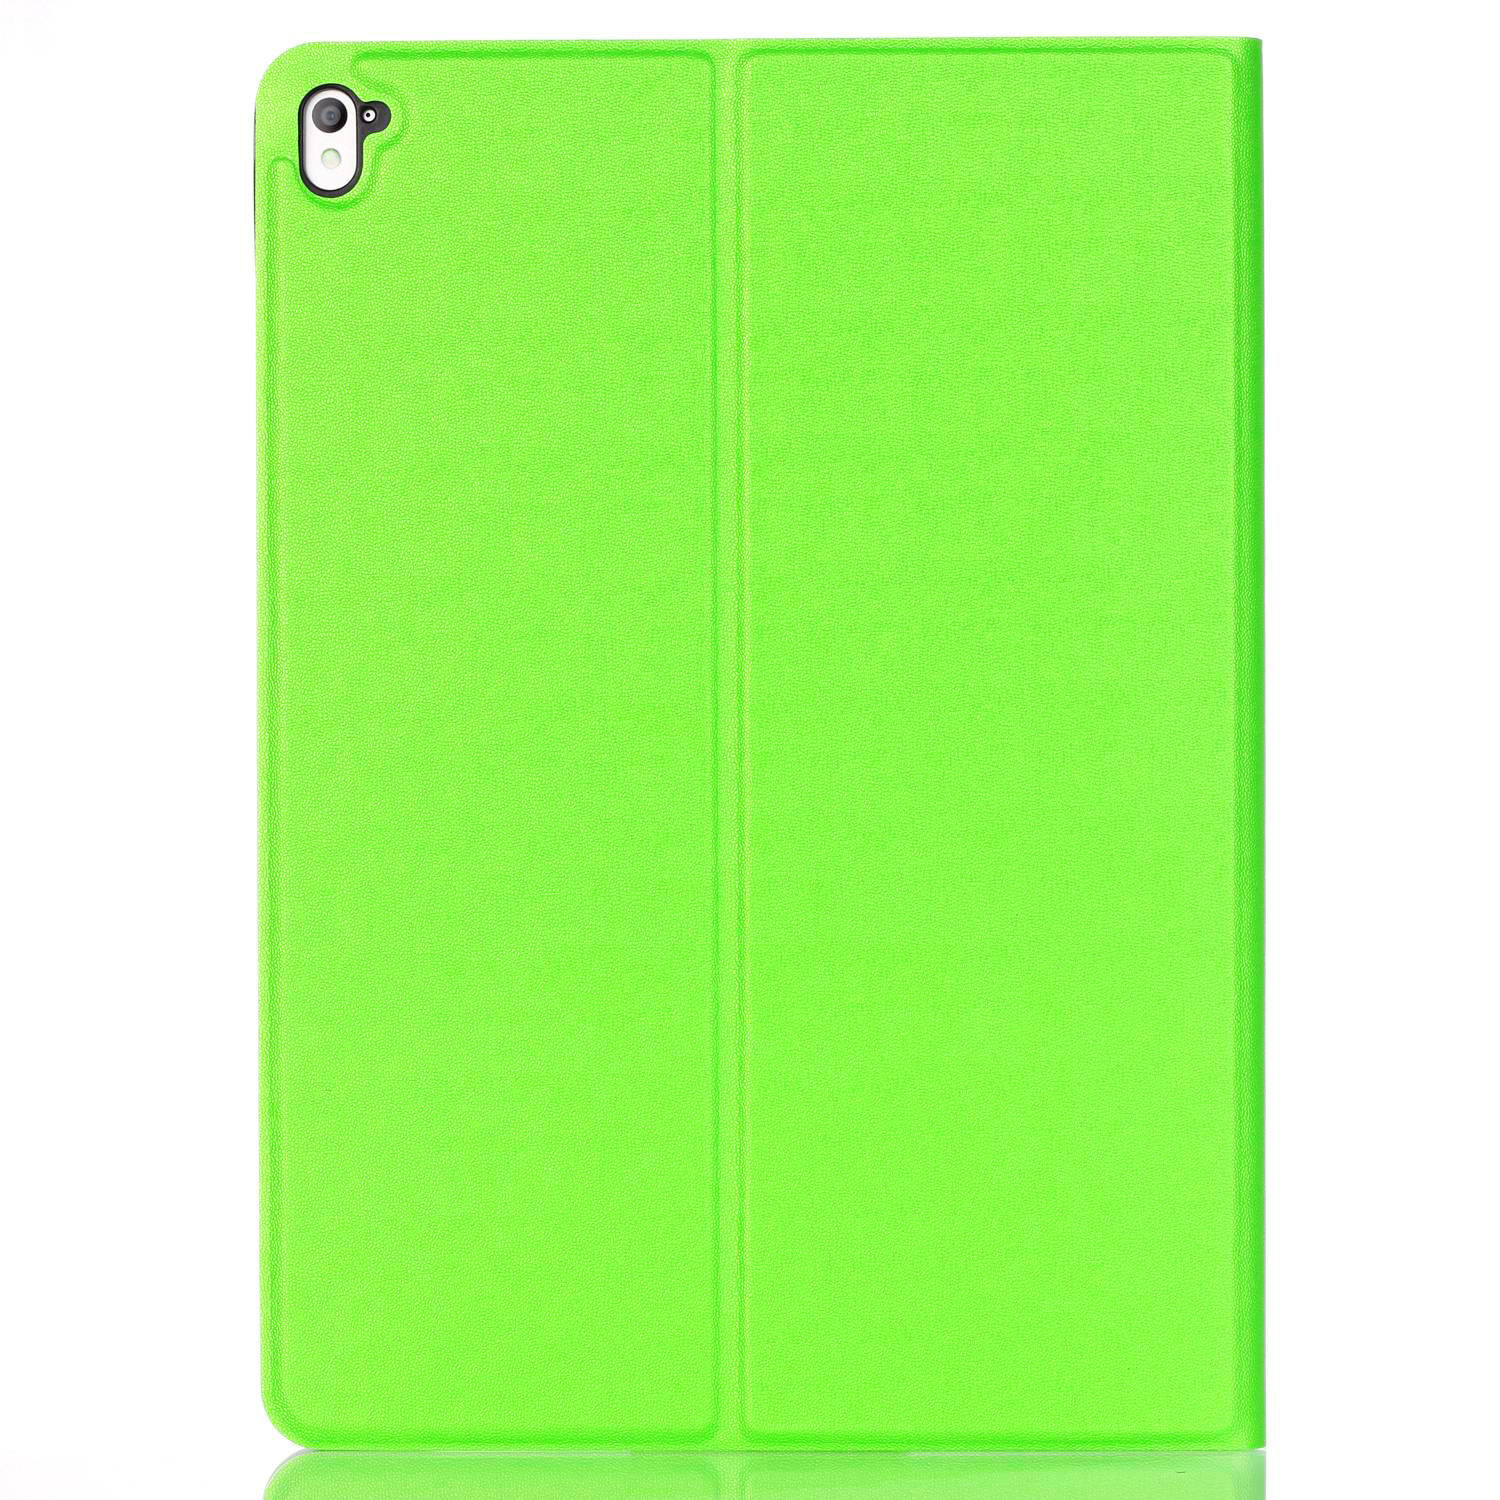 Custodia-Per-Apple-IPAD-Pro-IN-9-7-Pollici-Case-Cover-Protettiva-Skin-Shell miniatura 39